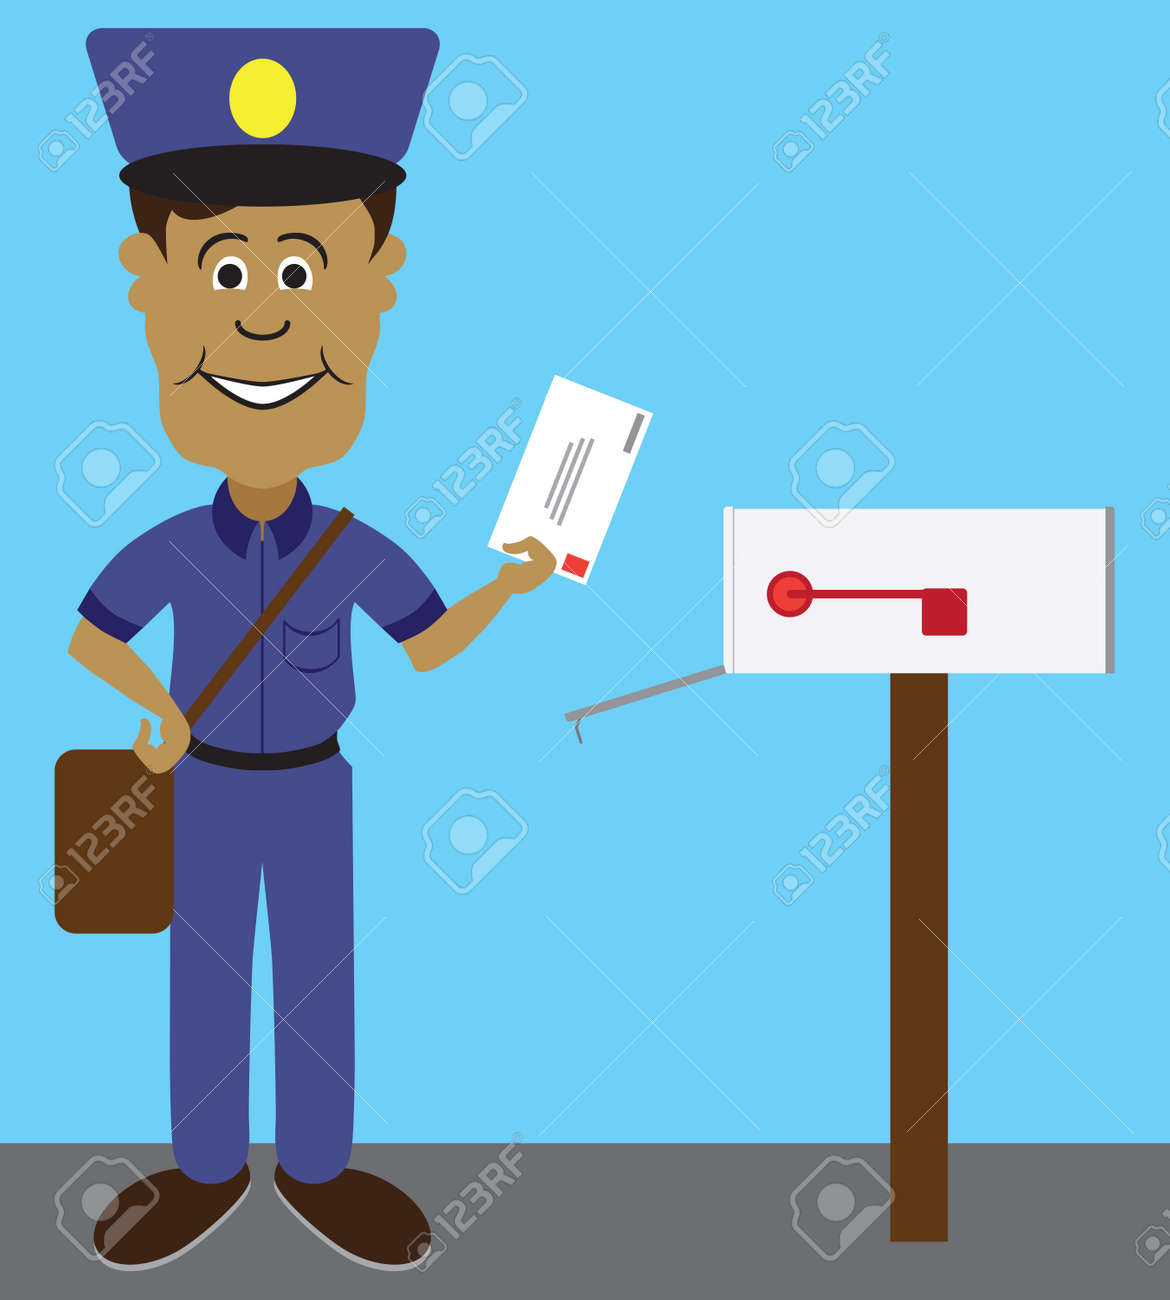 A flat vector cartoon mailman is smiling as he gets ready to deliver a letter - 166890983